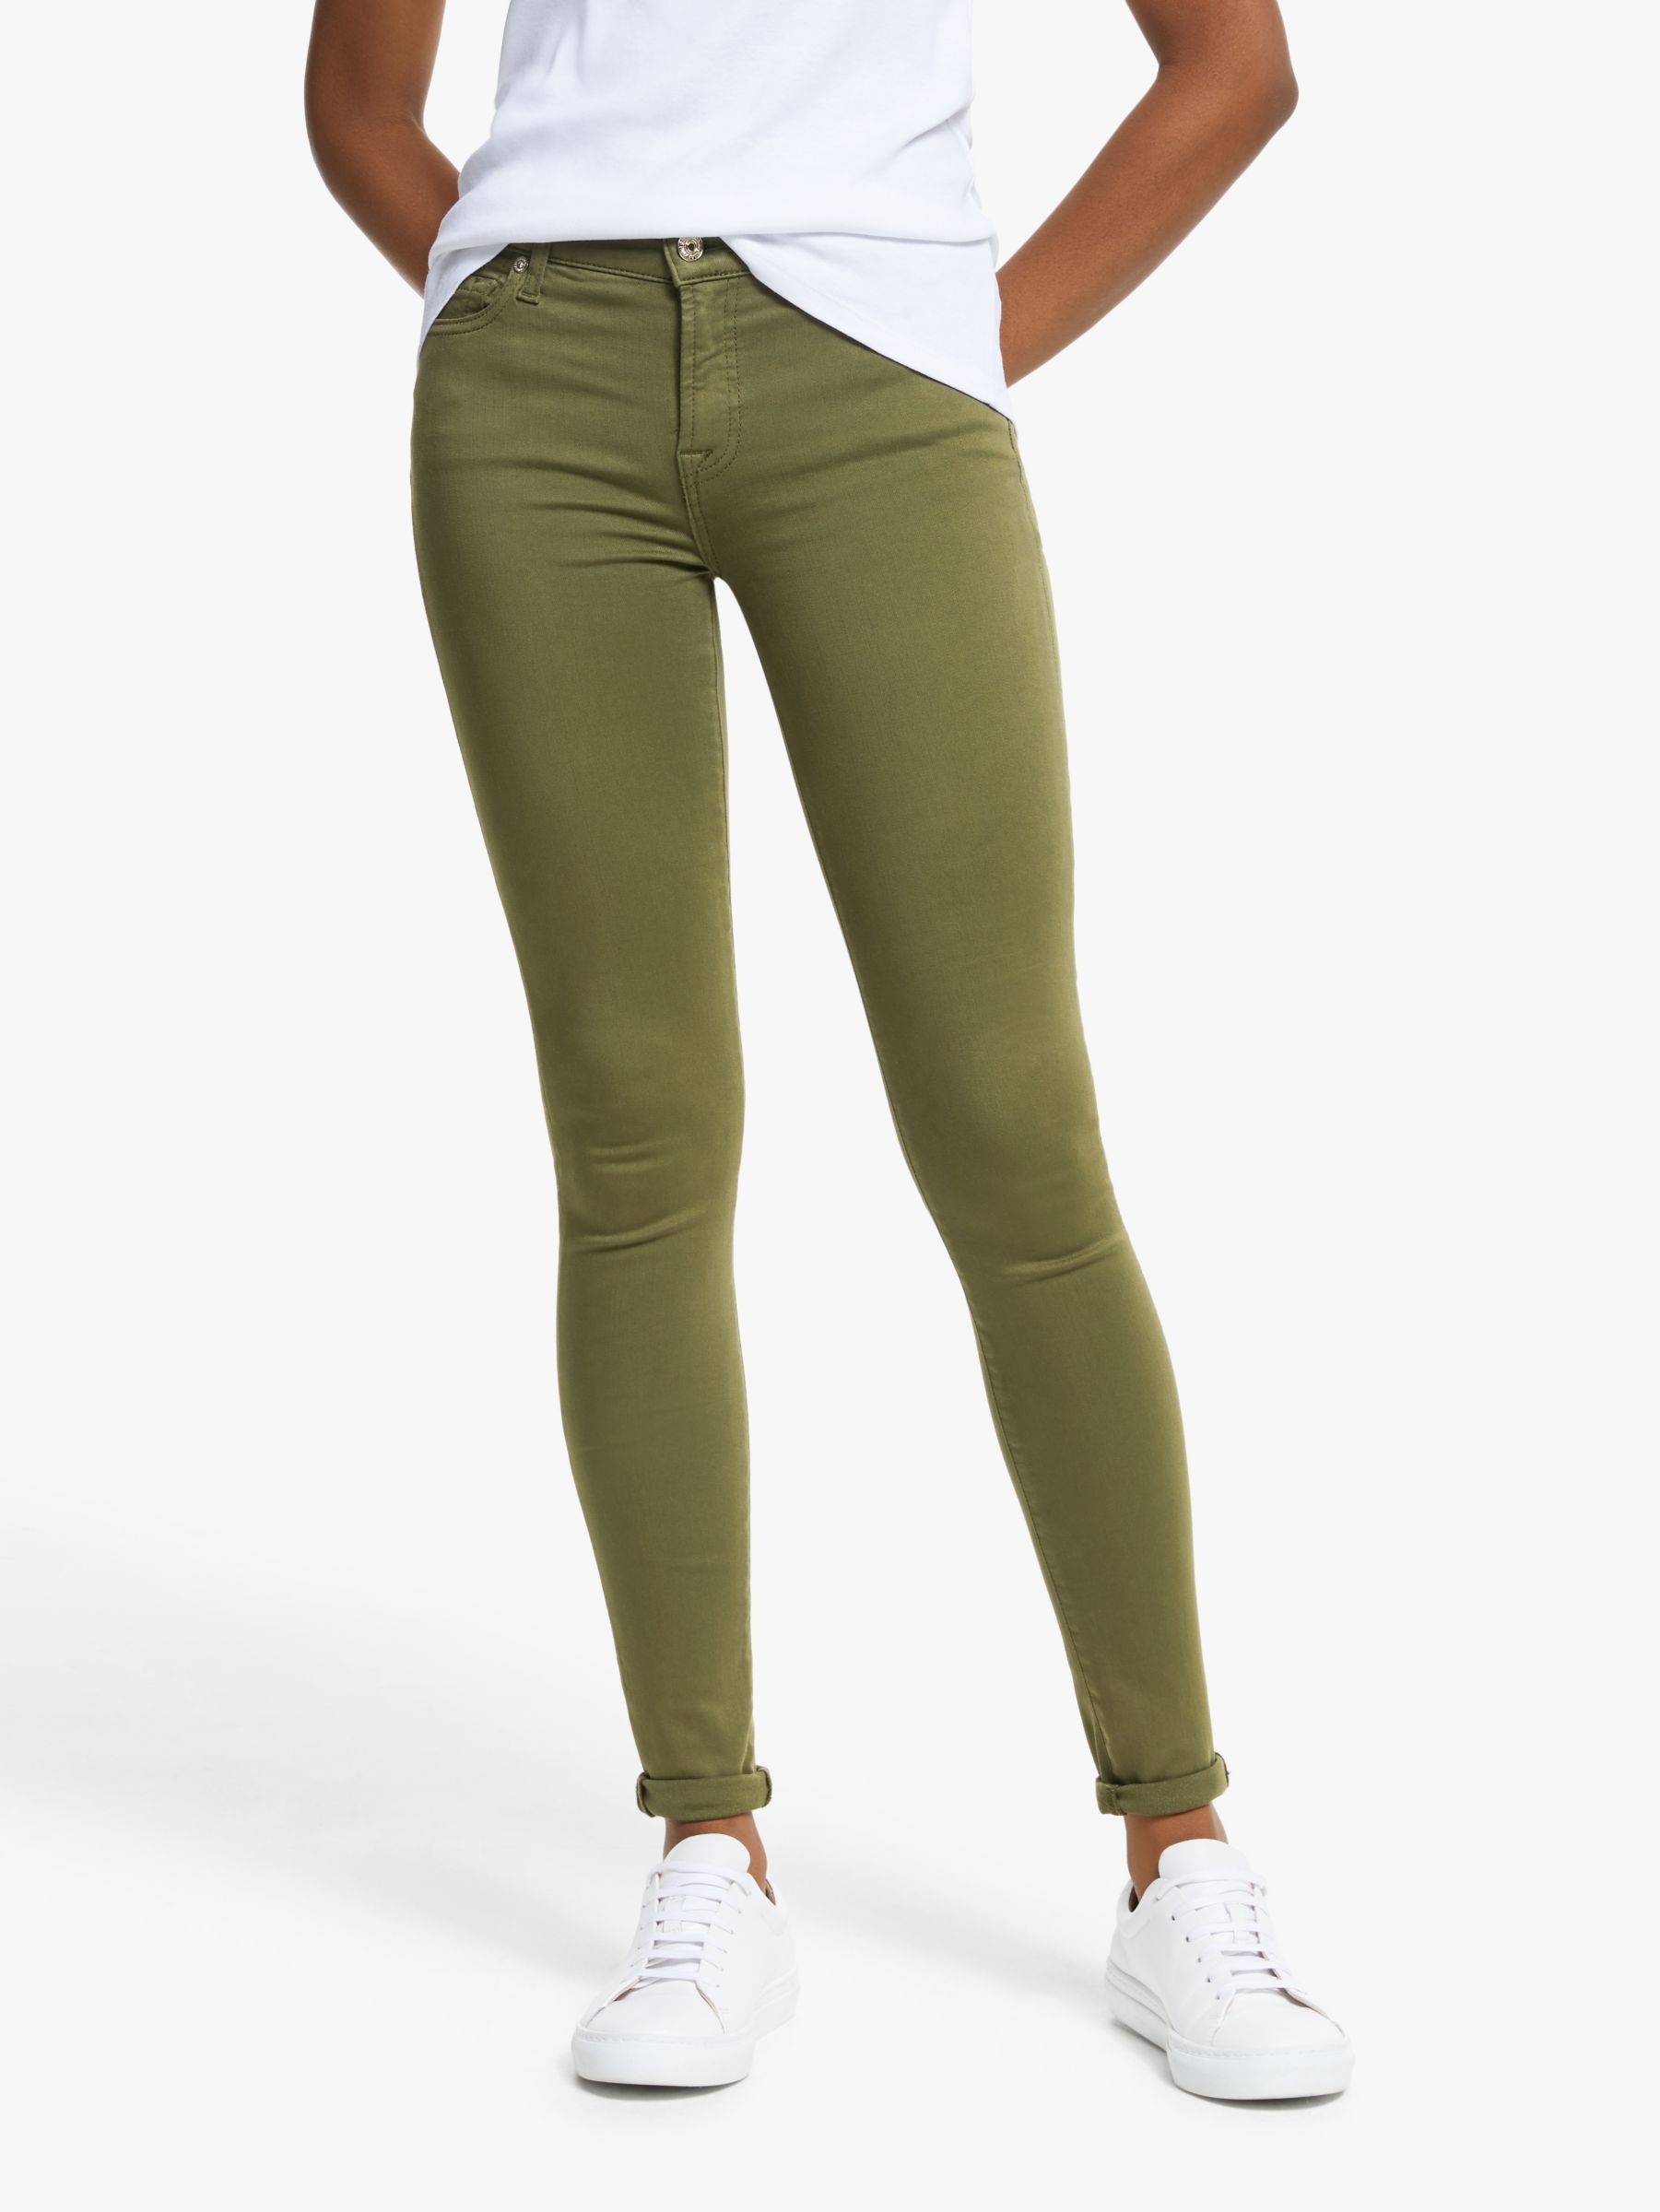 7 For All Mankind 7 For All Mankind Skinny Slim Illusion Jeans